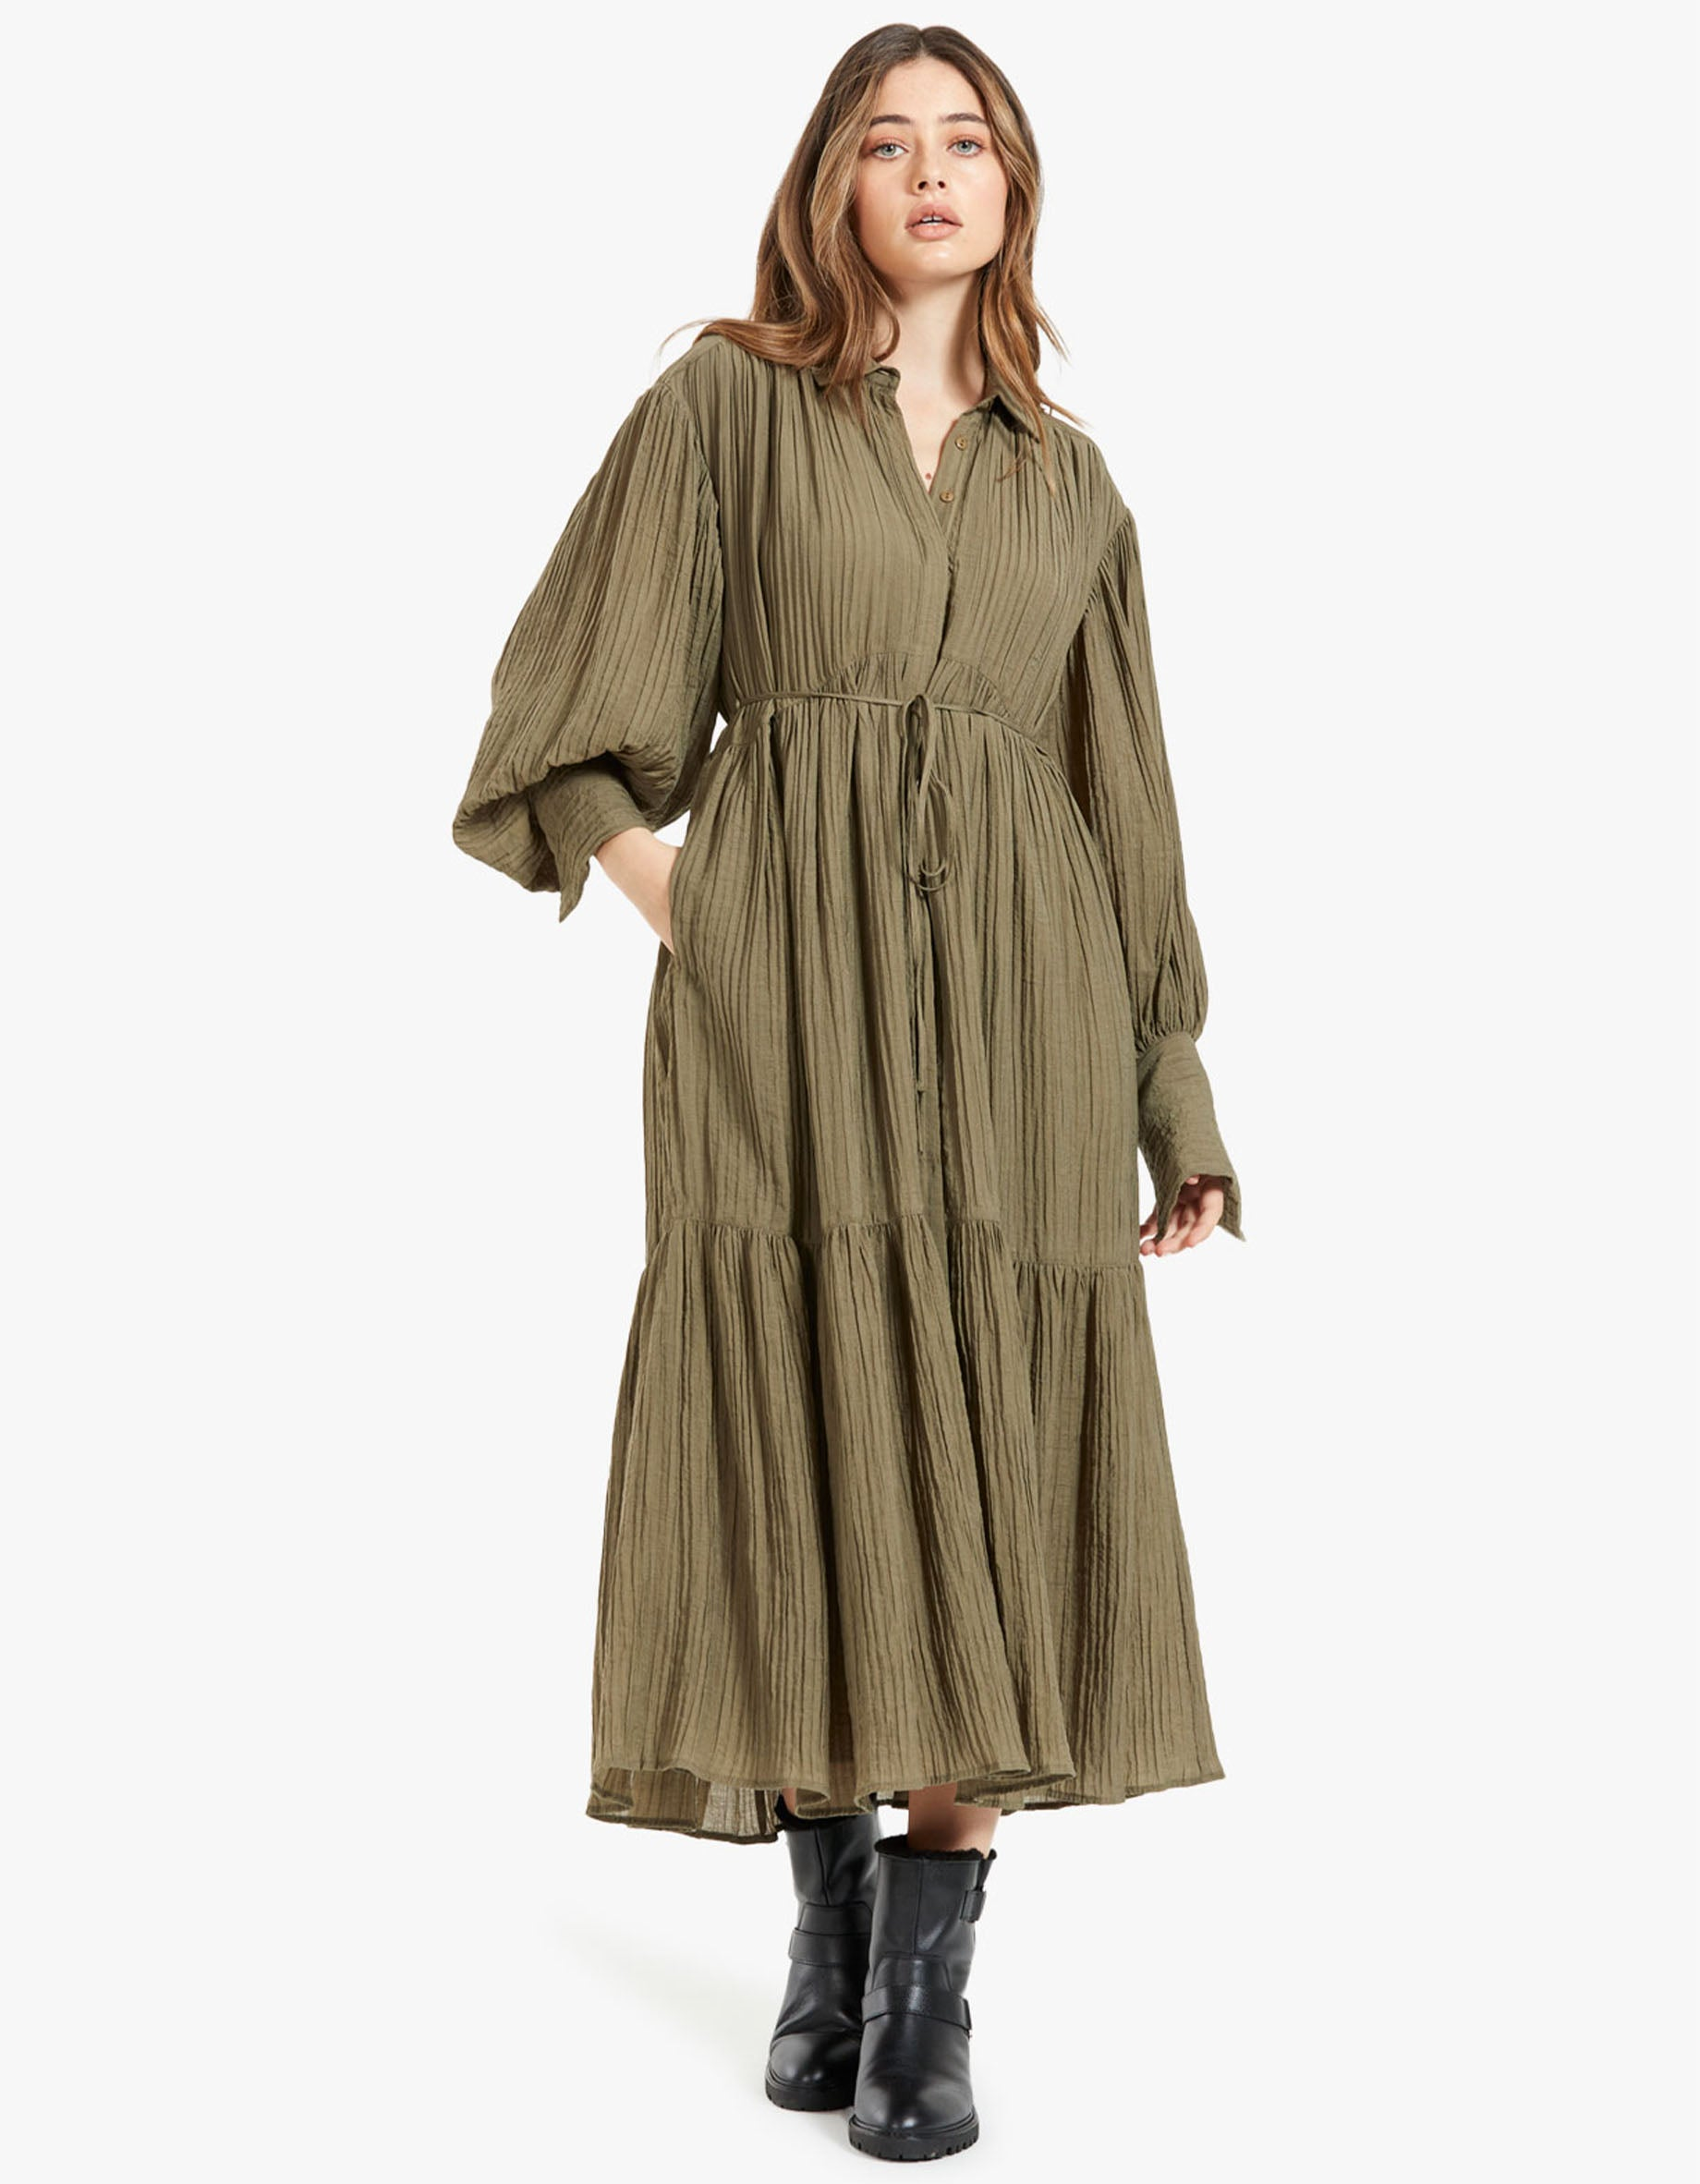 Mila Button Up Tiered Midi Dress - Olive